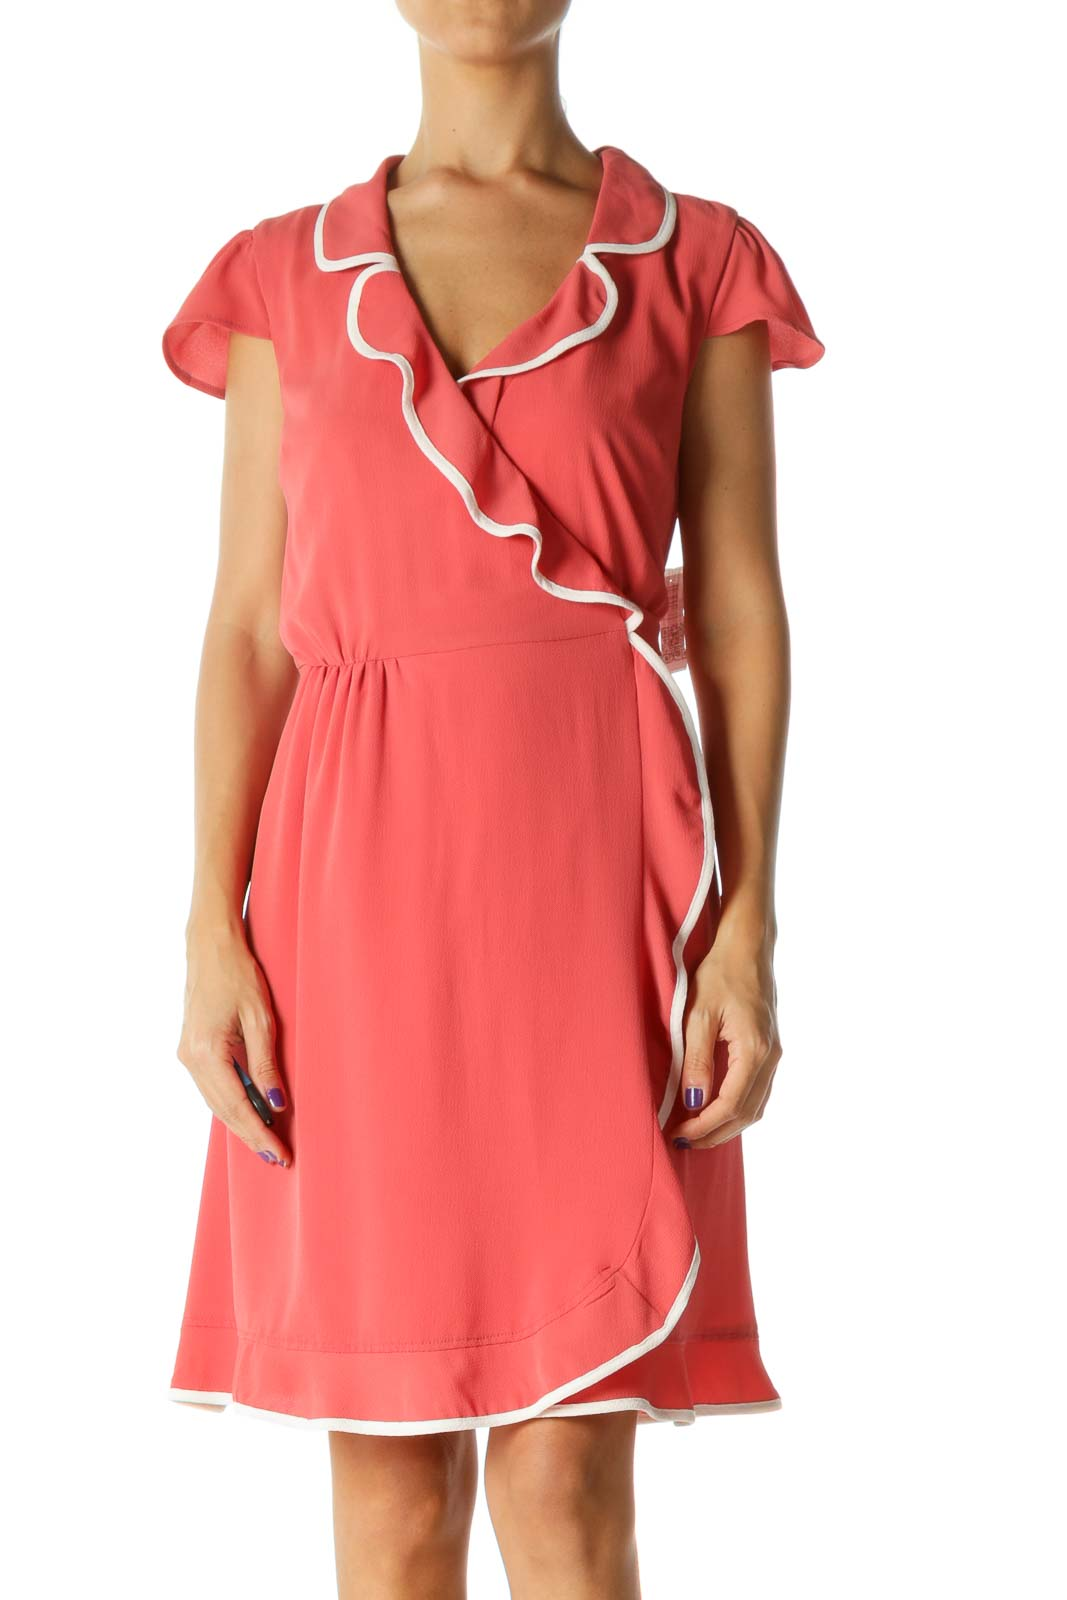 Coral Pink White Trim Detail Ruffle Cap Sleeves Day Dress